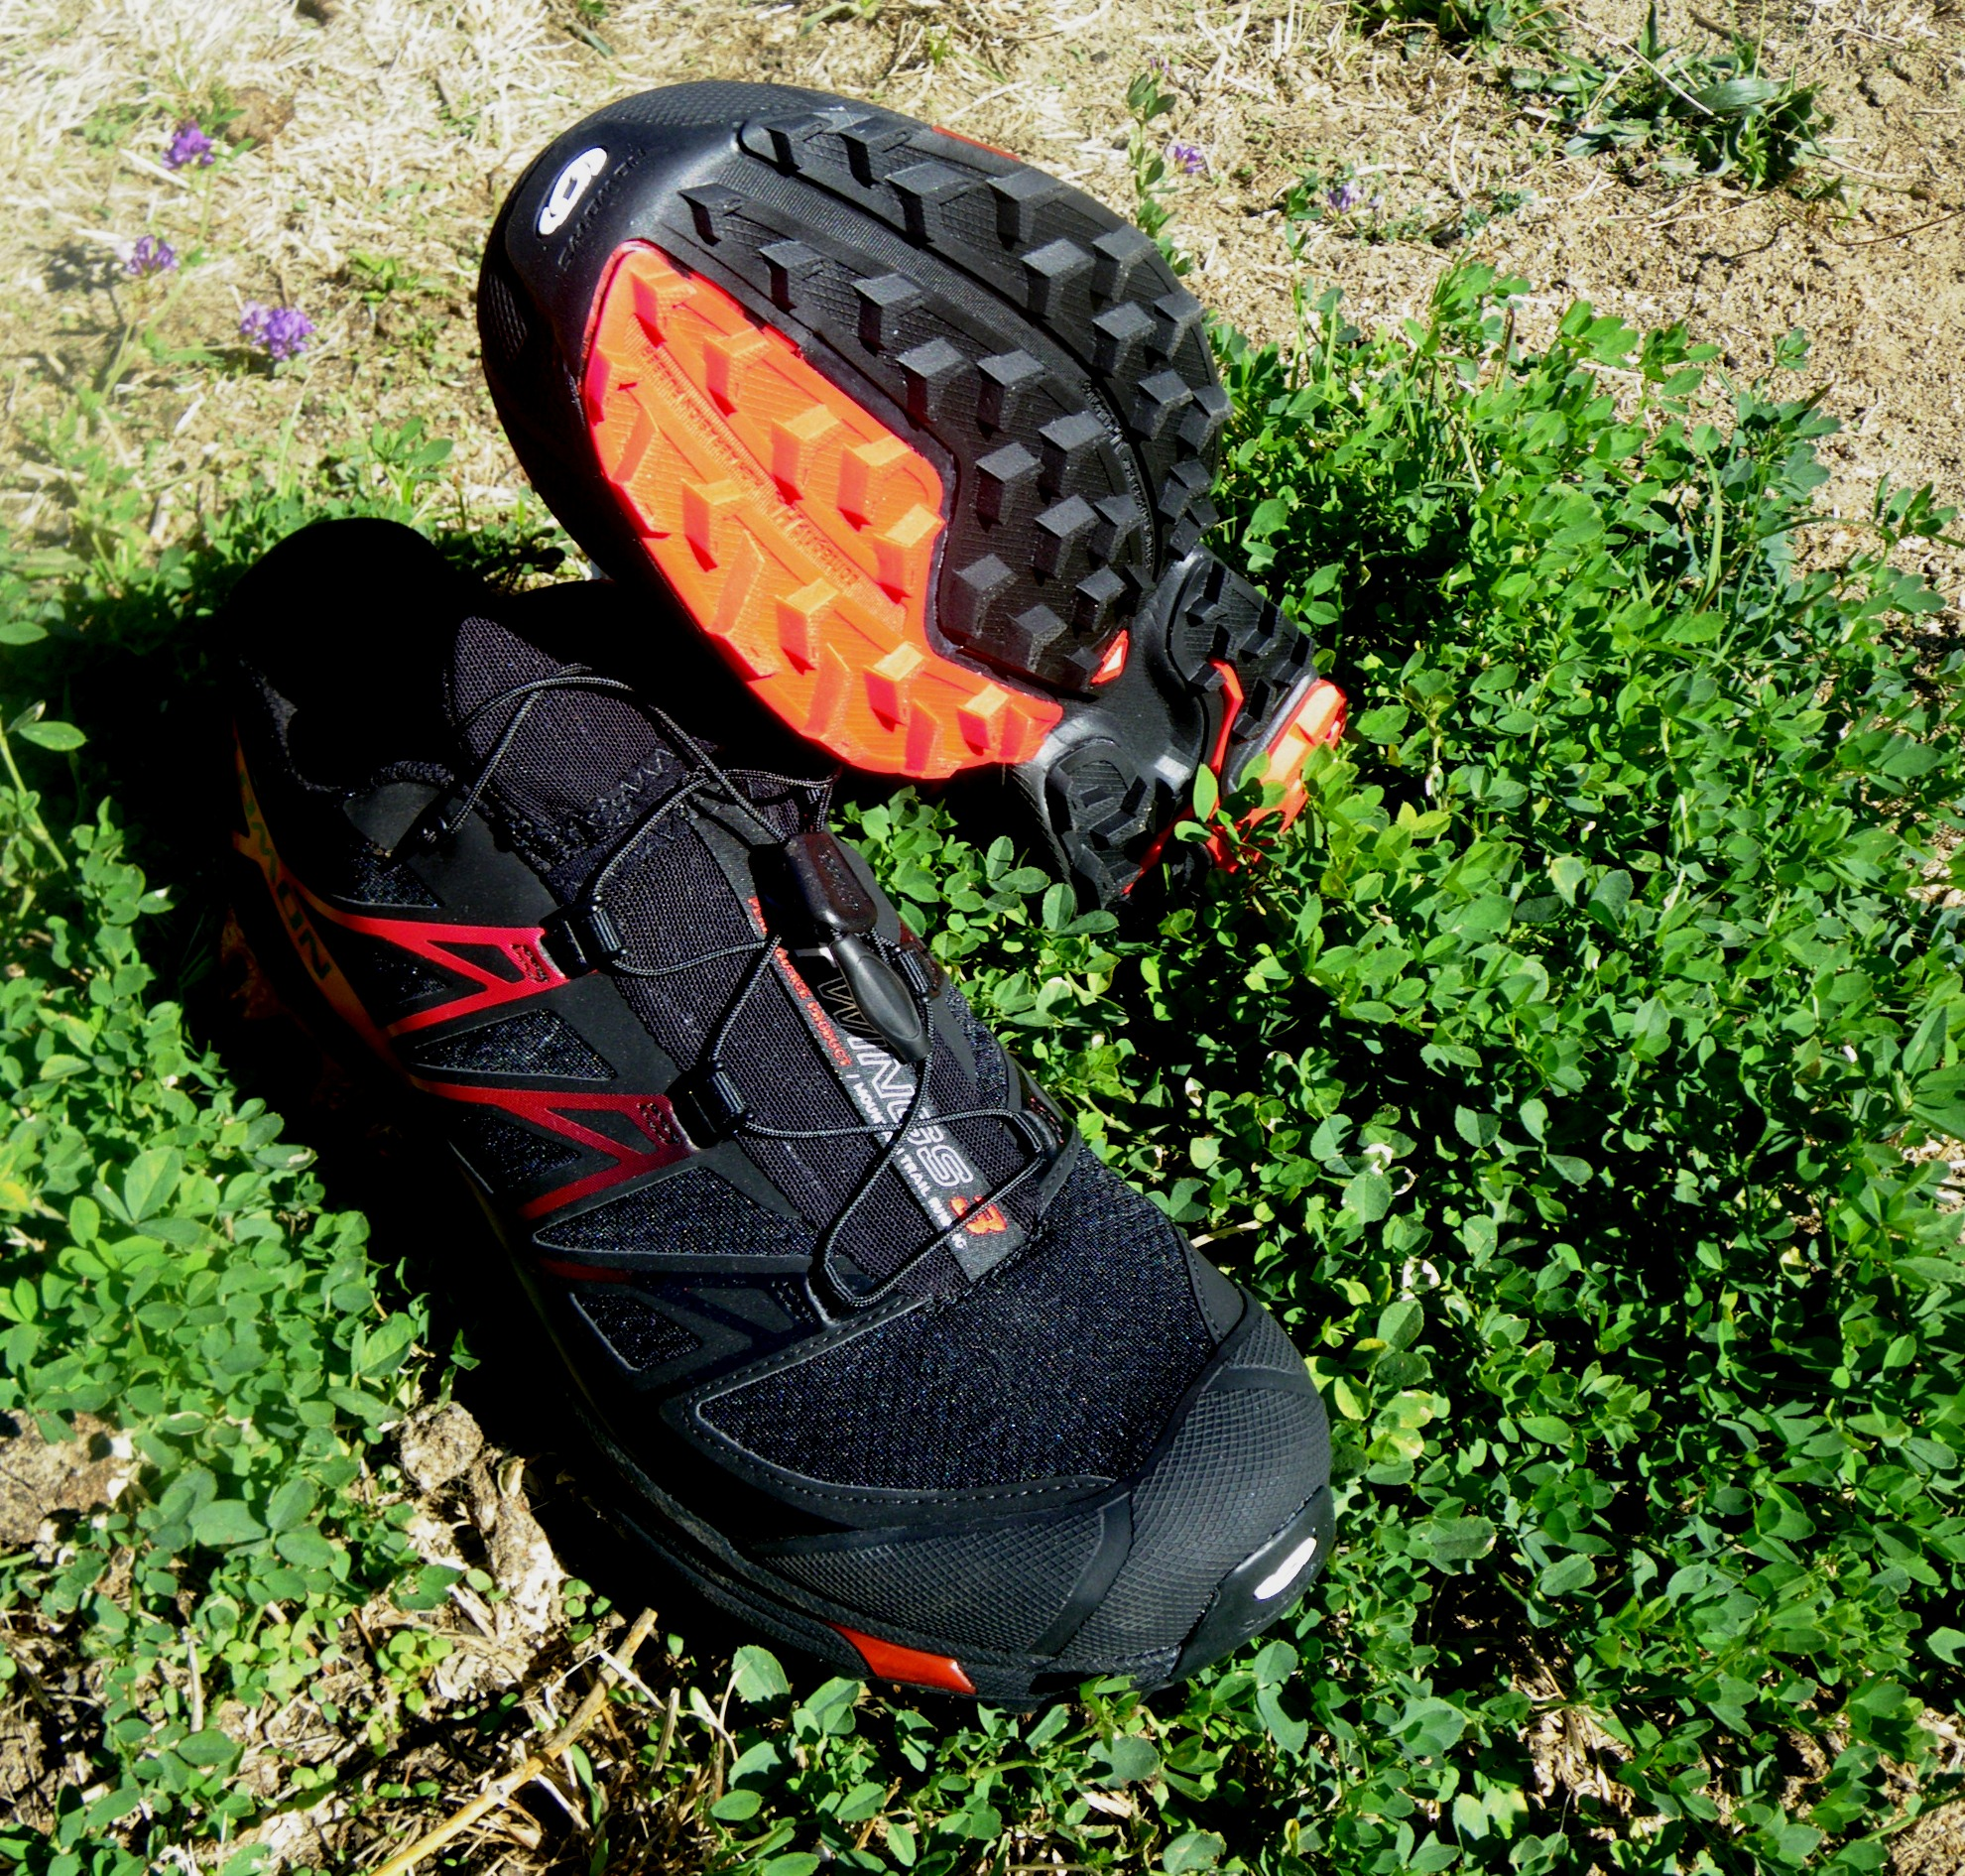 salomon xt wings review